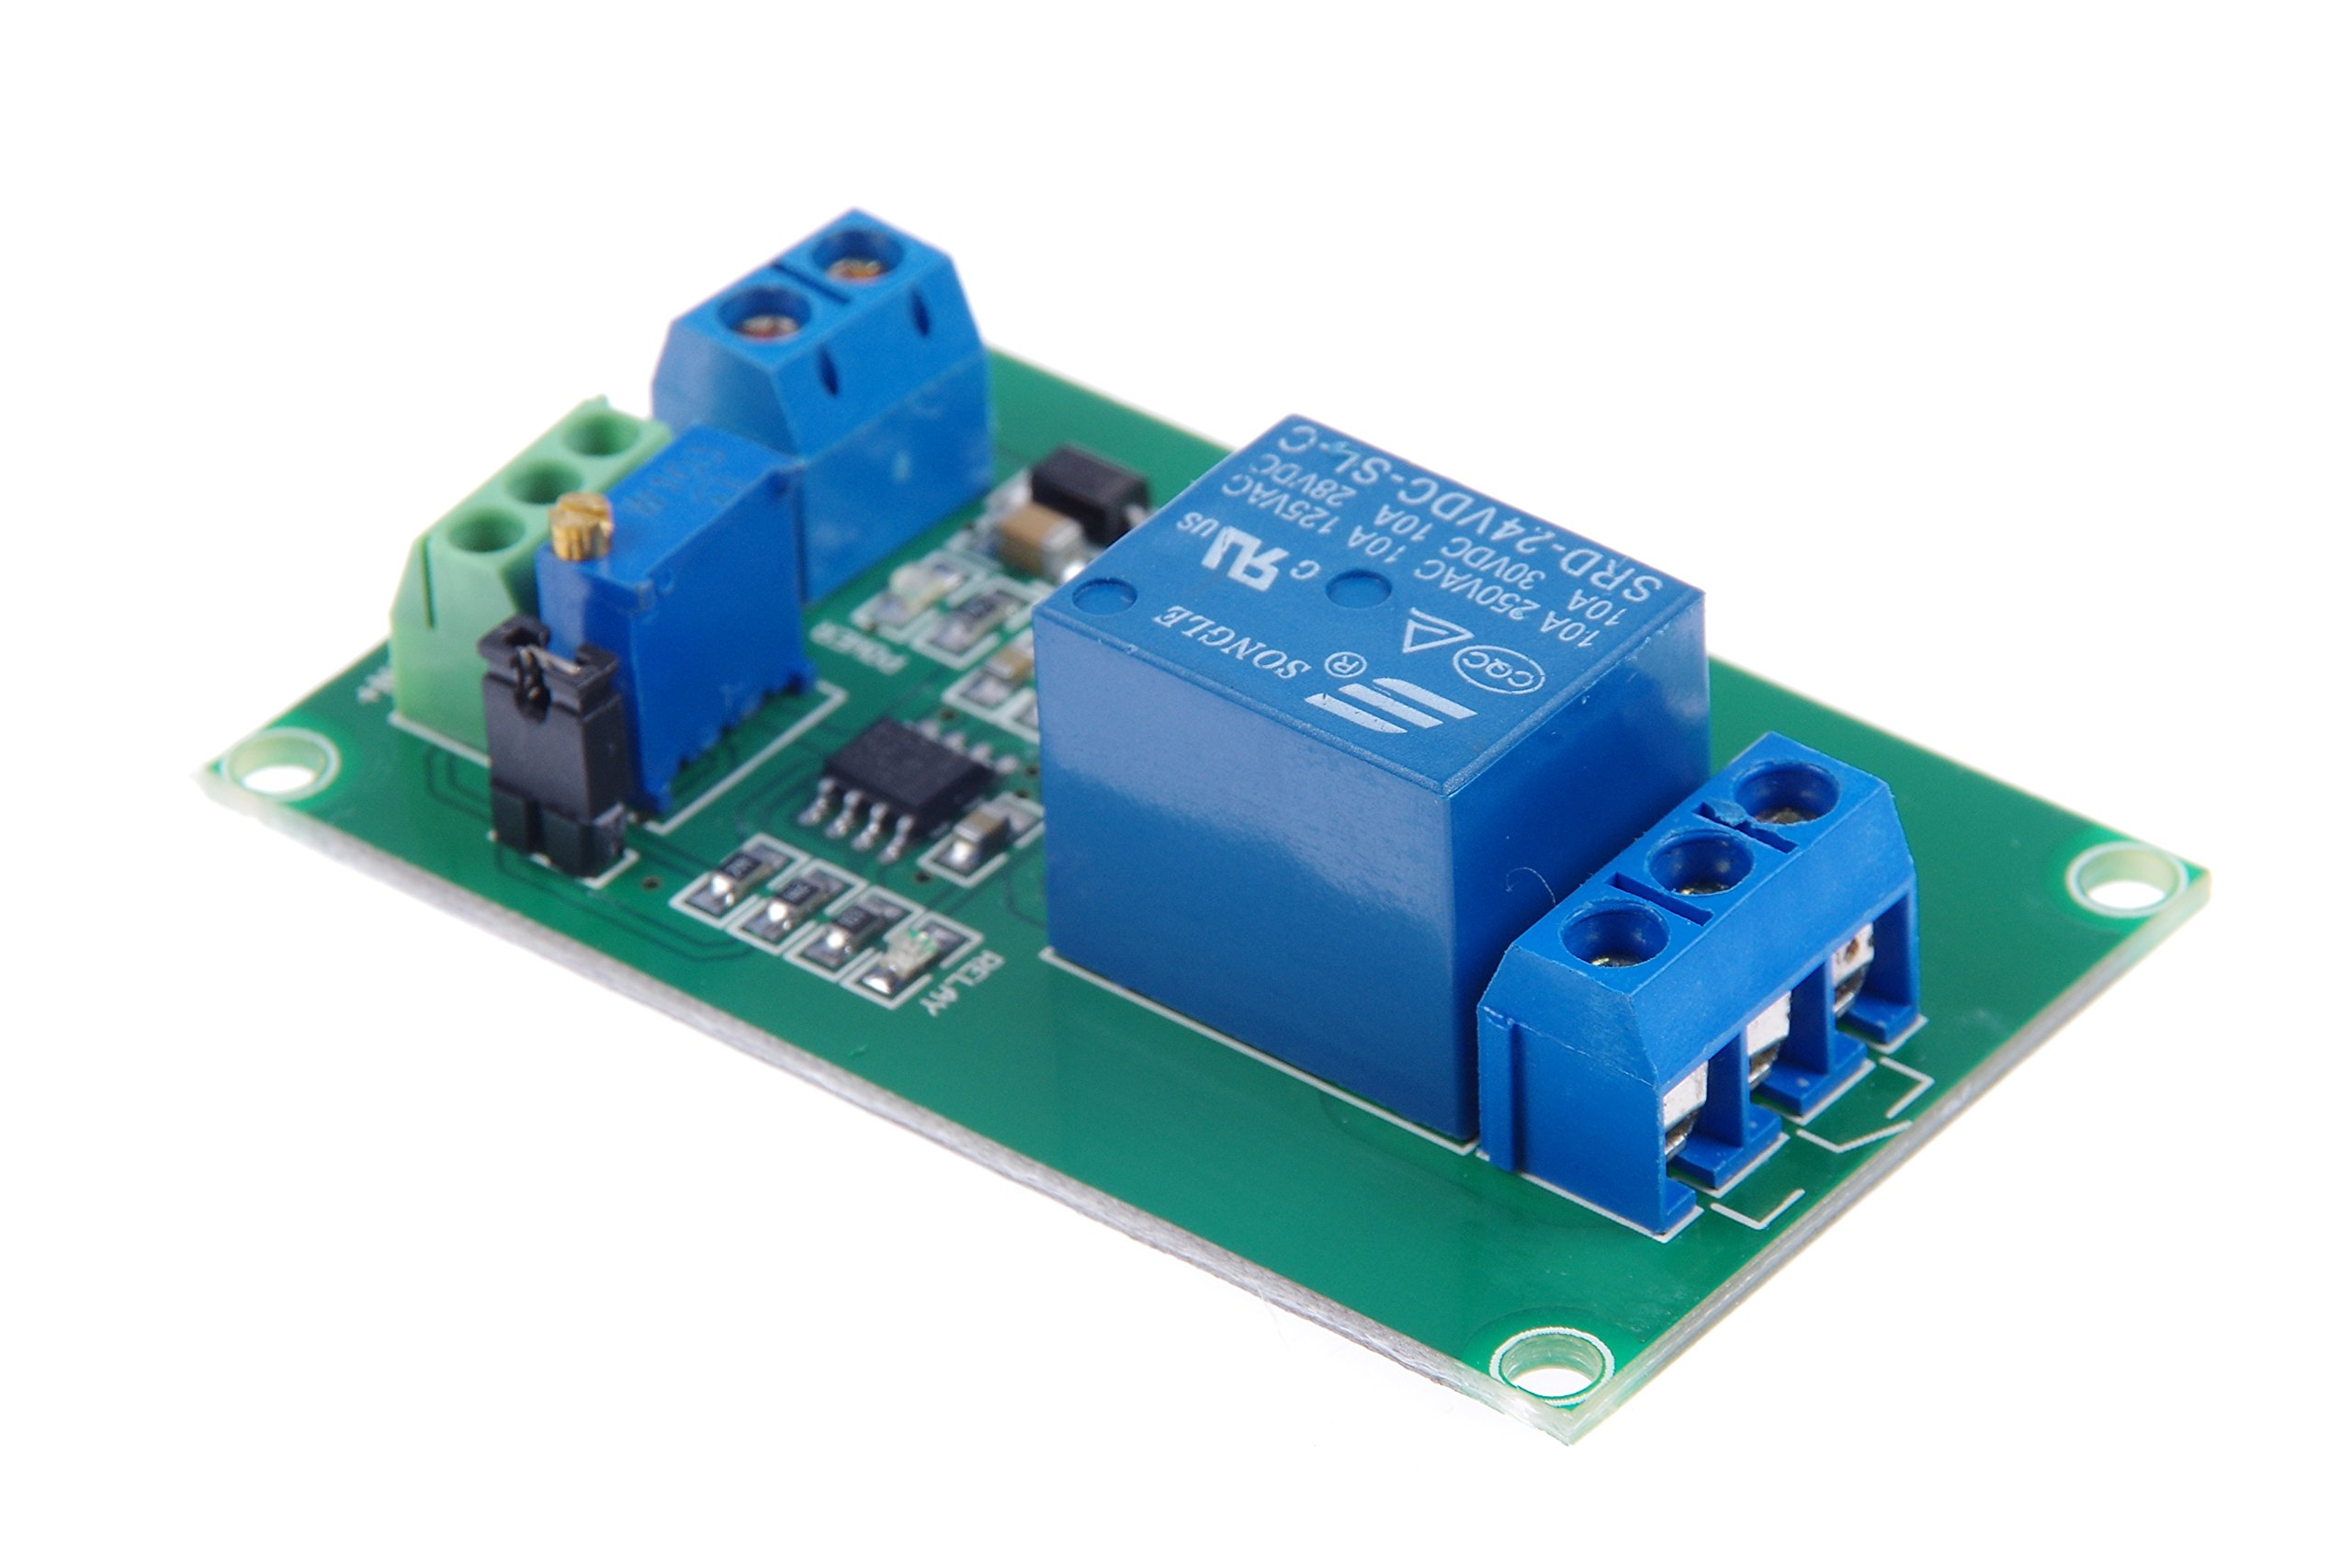 KNACRO 1-Way 24V Voltage Comparator Module LM393 Voltage Comparator IC For Automotive circuit modification Industrial equipment Circuit Application Testing